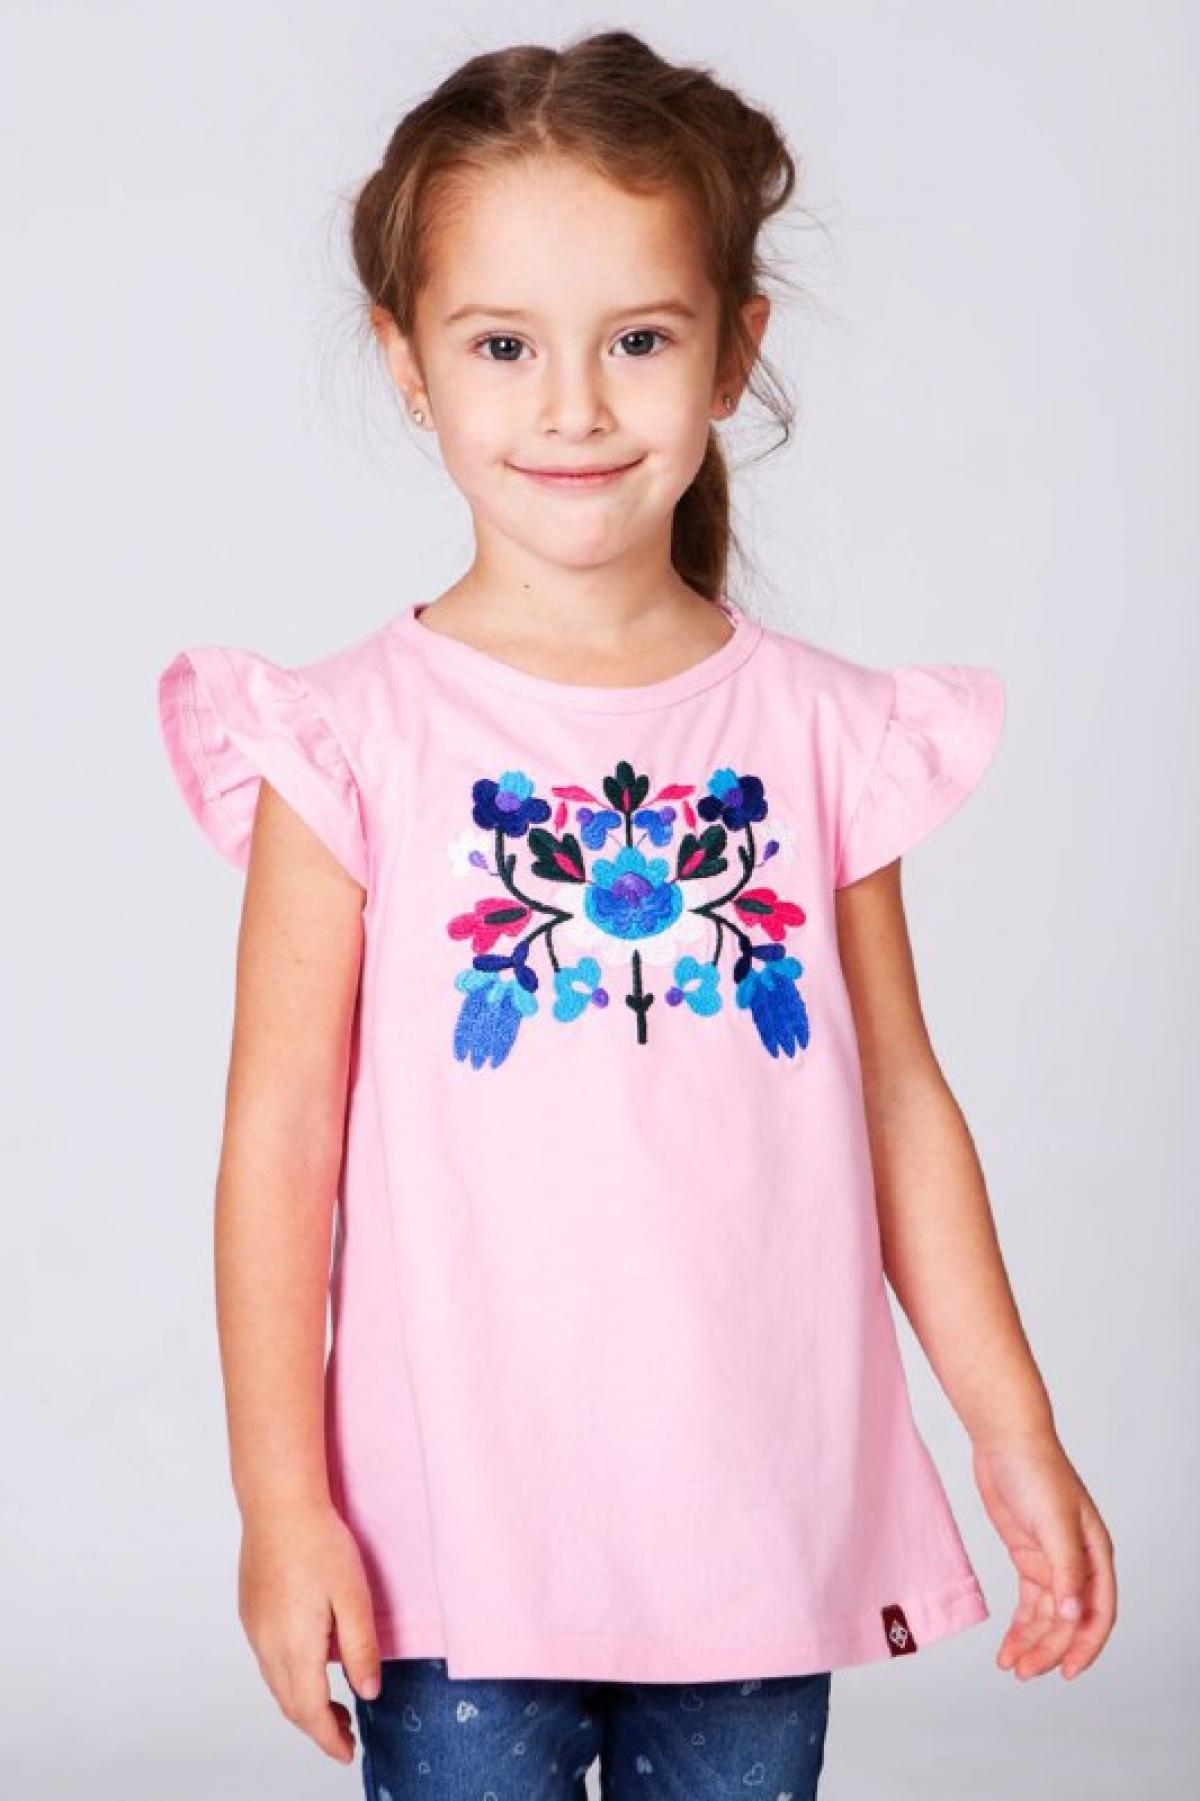 Children's T-shirt with embroidery for girl pink. Photo №1. | Narodnyi dim Ukraine